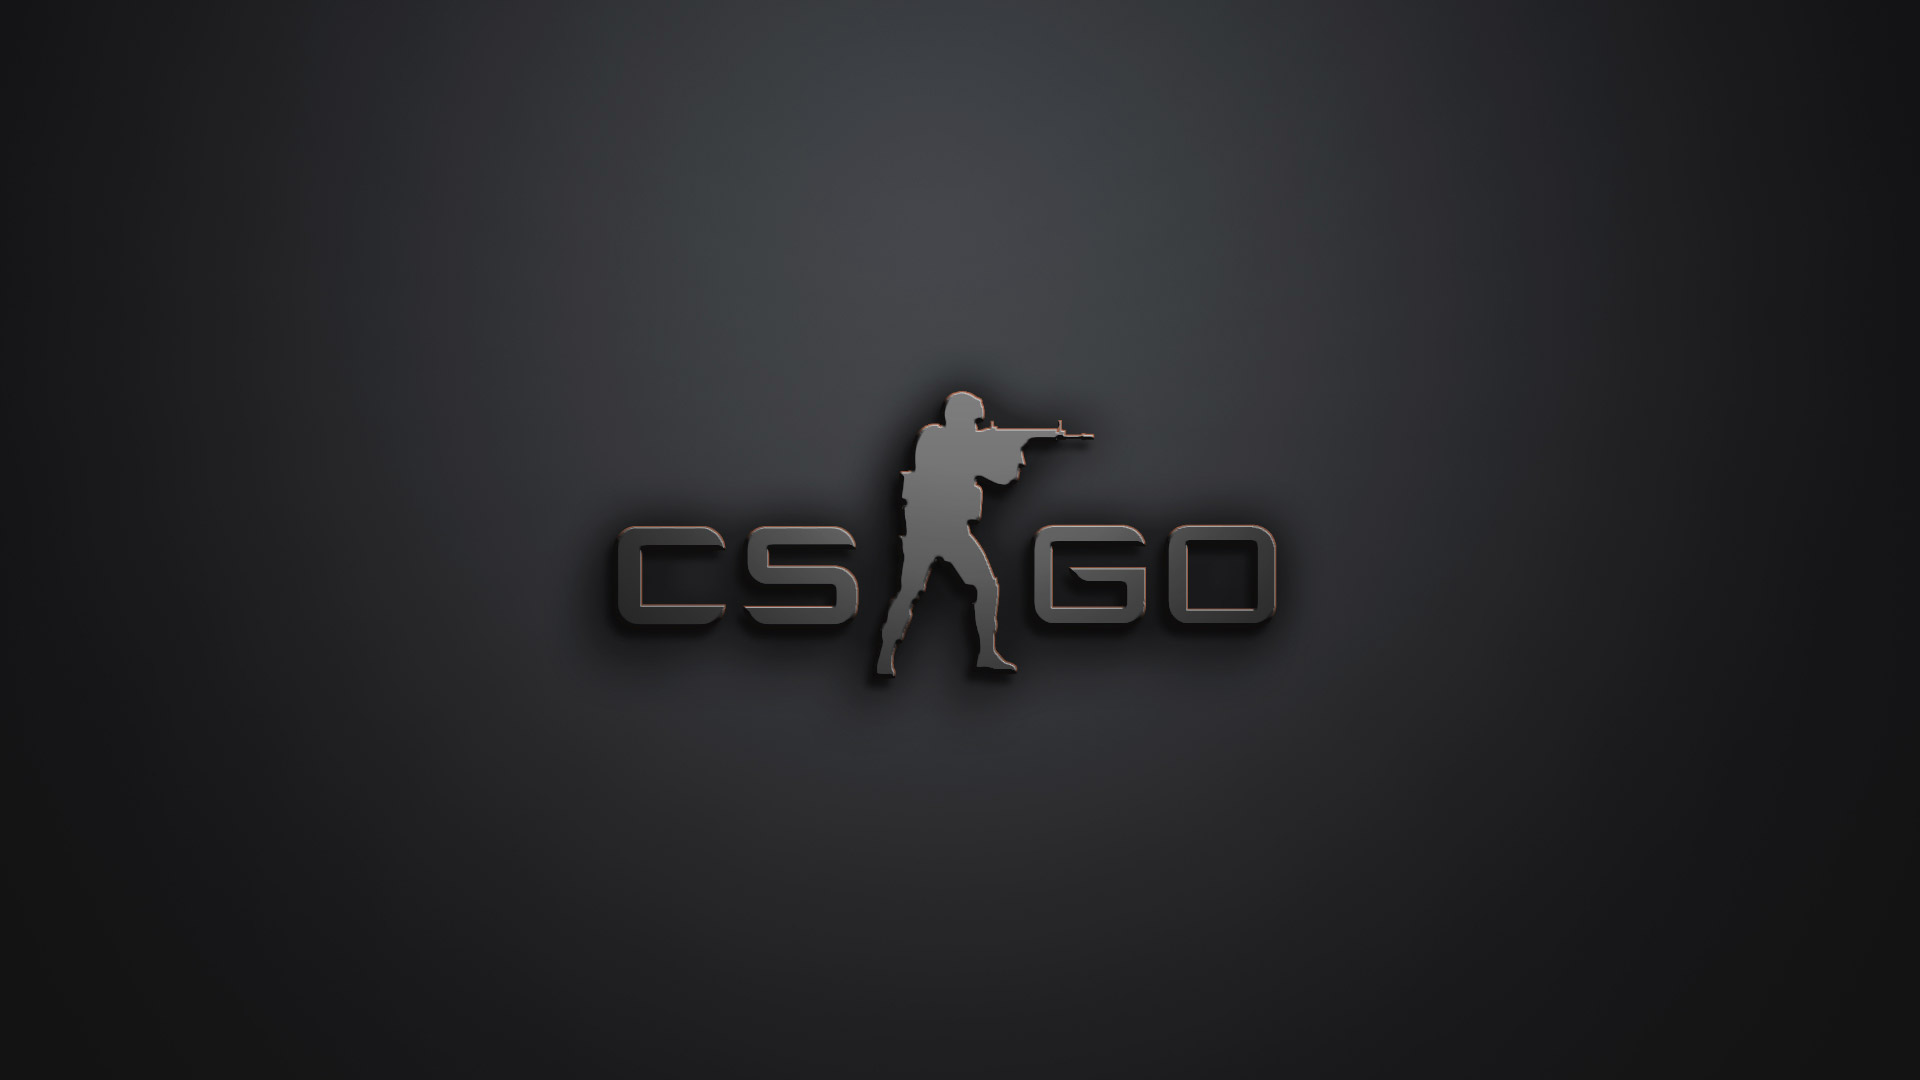 Lion Hd Wallpapers For Iphone Counter Strike Wallpapers Pictures Images